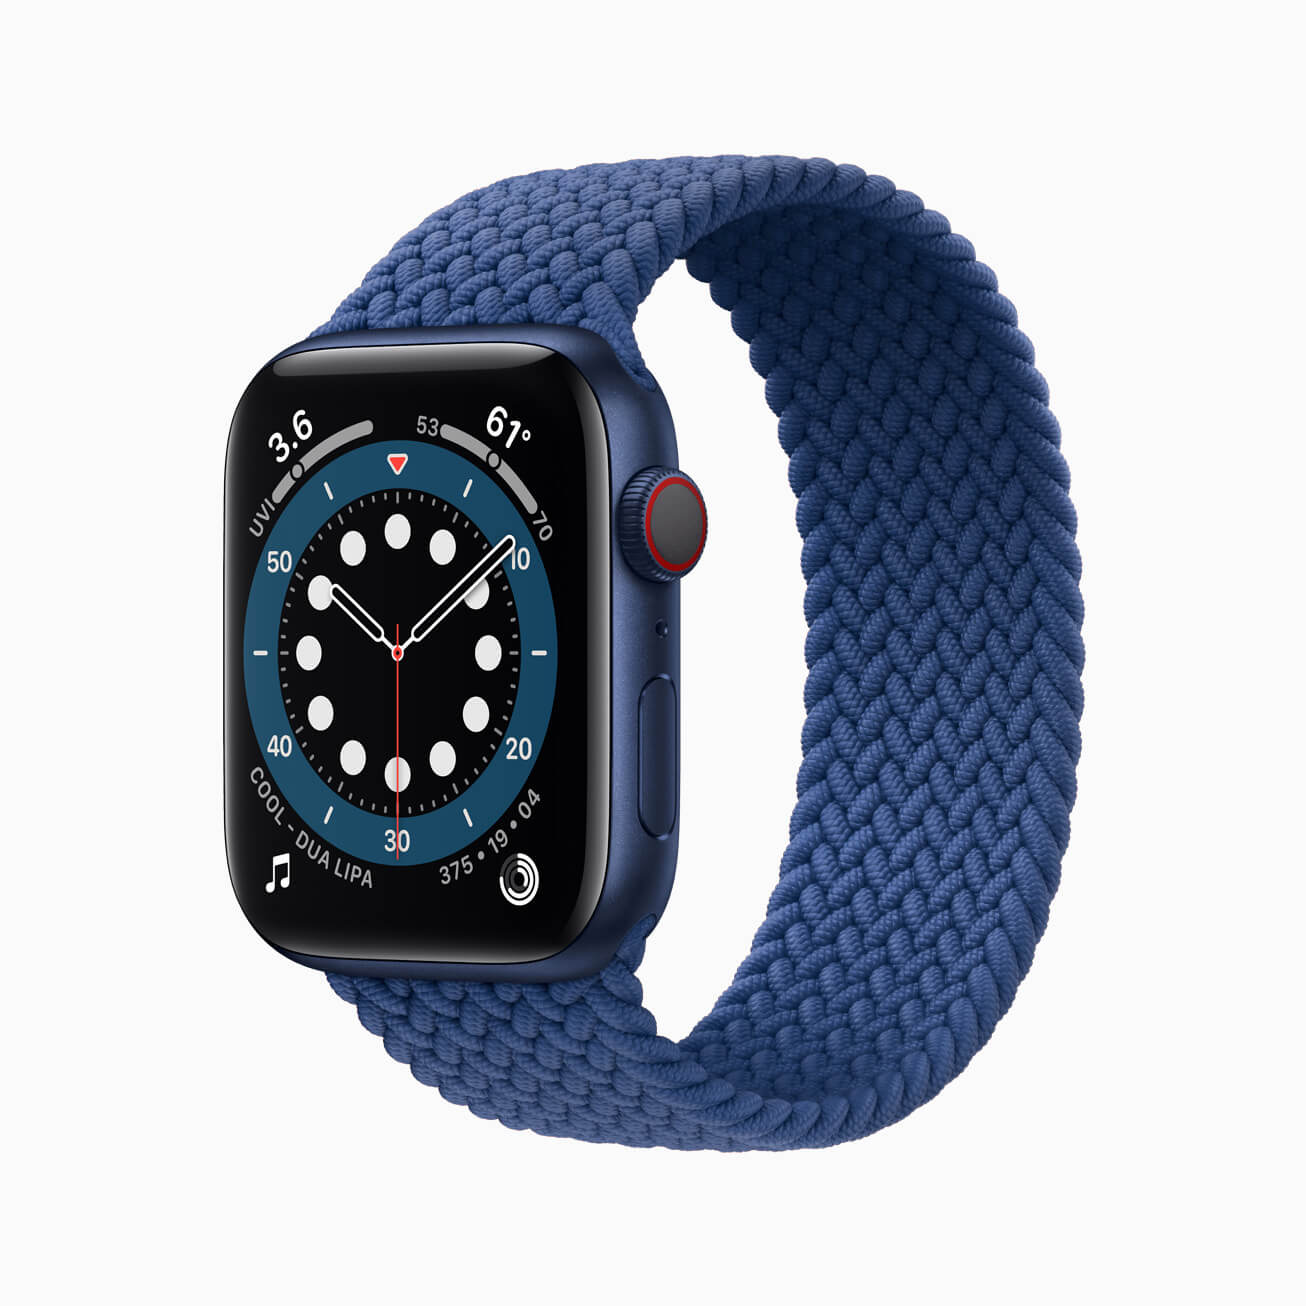 Apple watch series 6 aluminum blue case 09152020